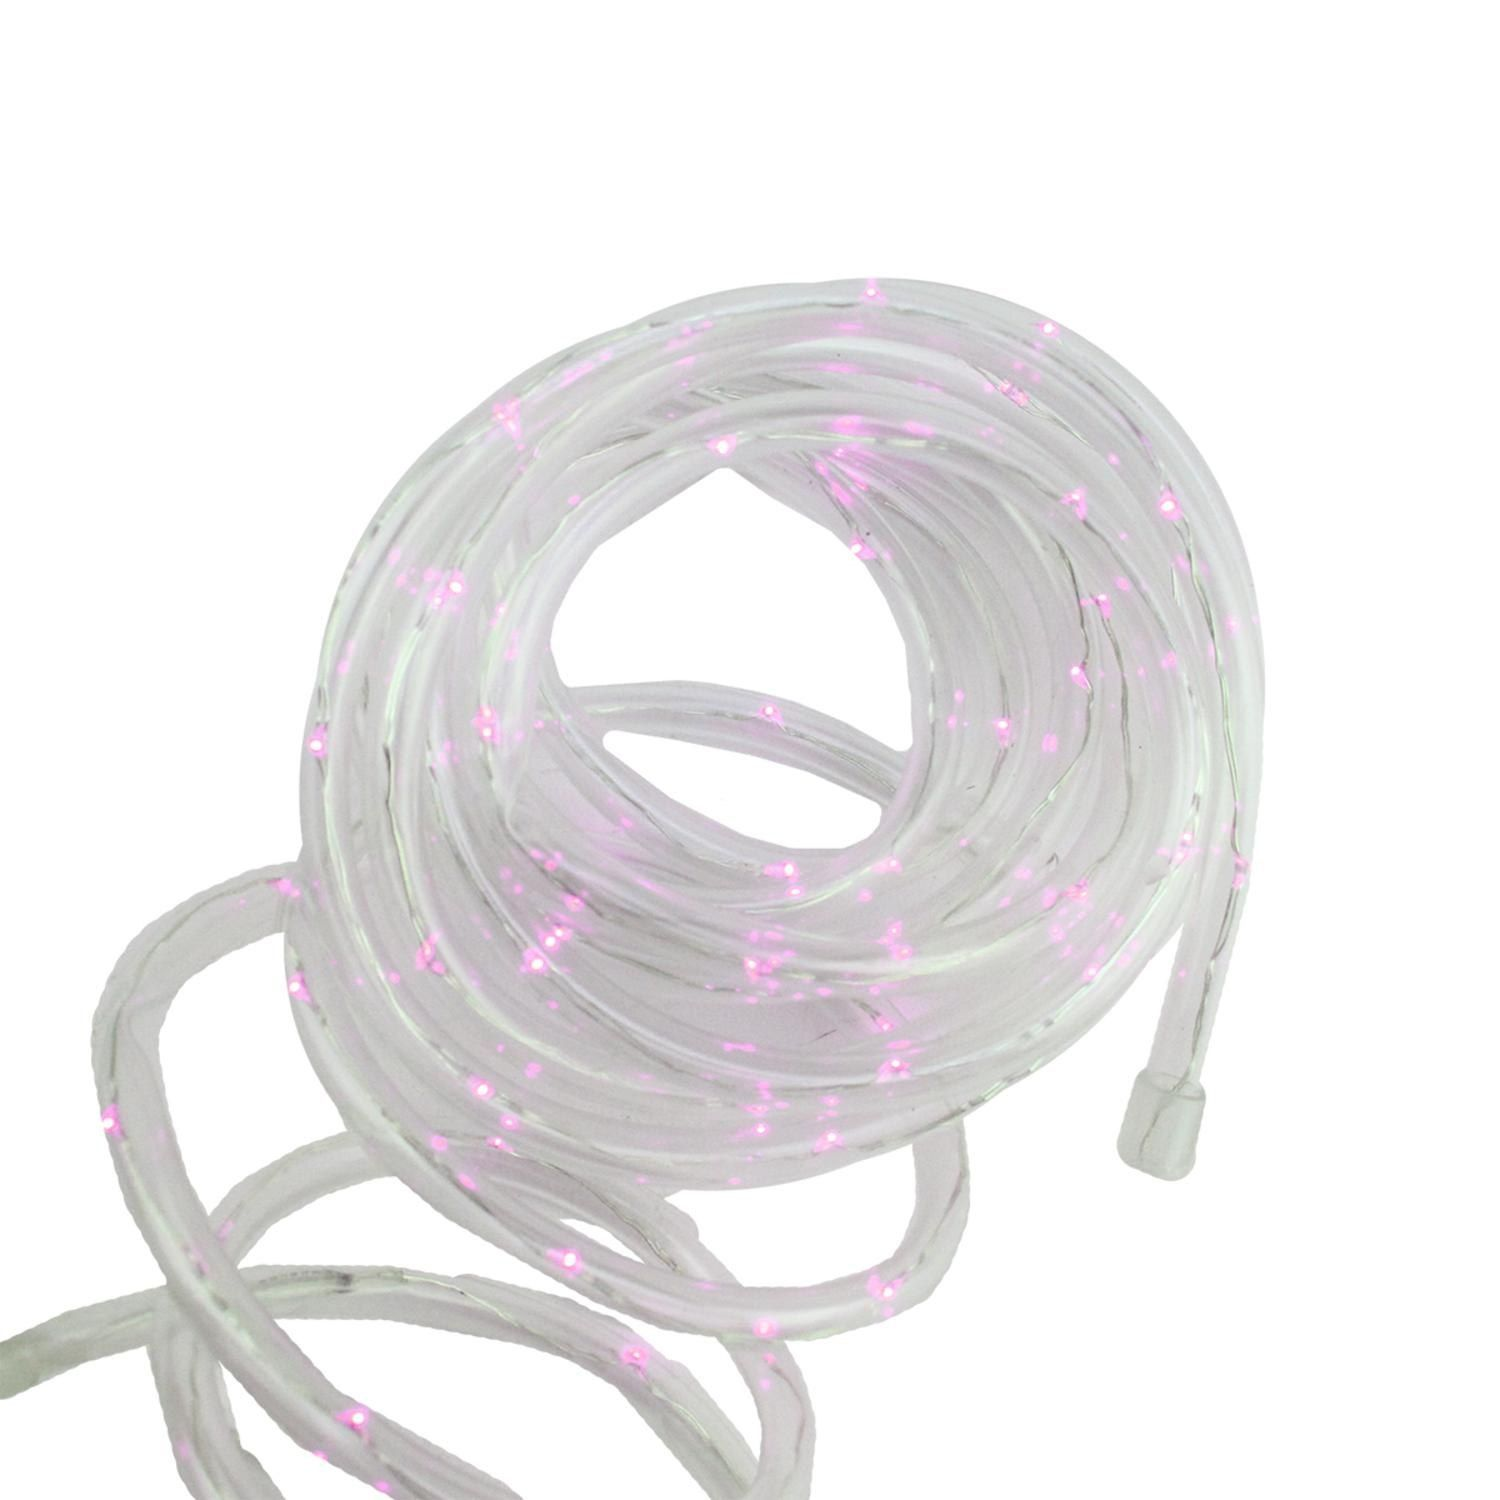 12 solar powered multi function pink led indooroutdoor christmas 12 solar powered multi function pink led indooroutdoor christmas rope lights with aloadofball Image collections